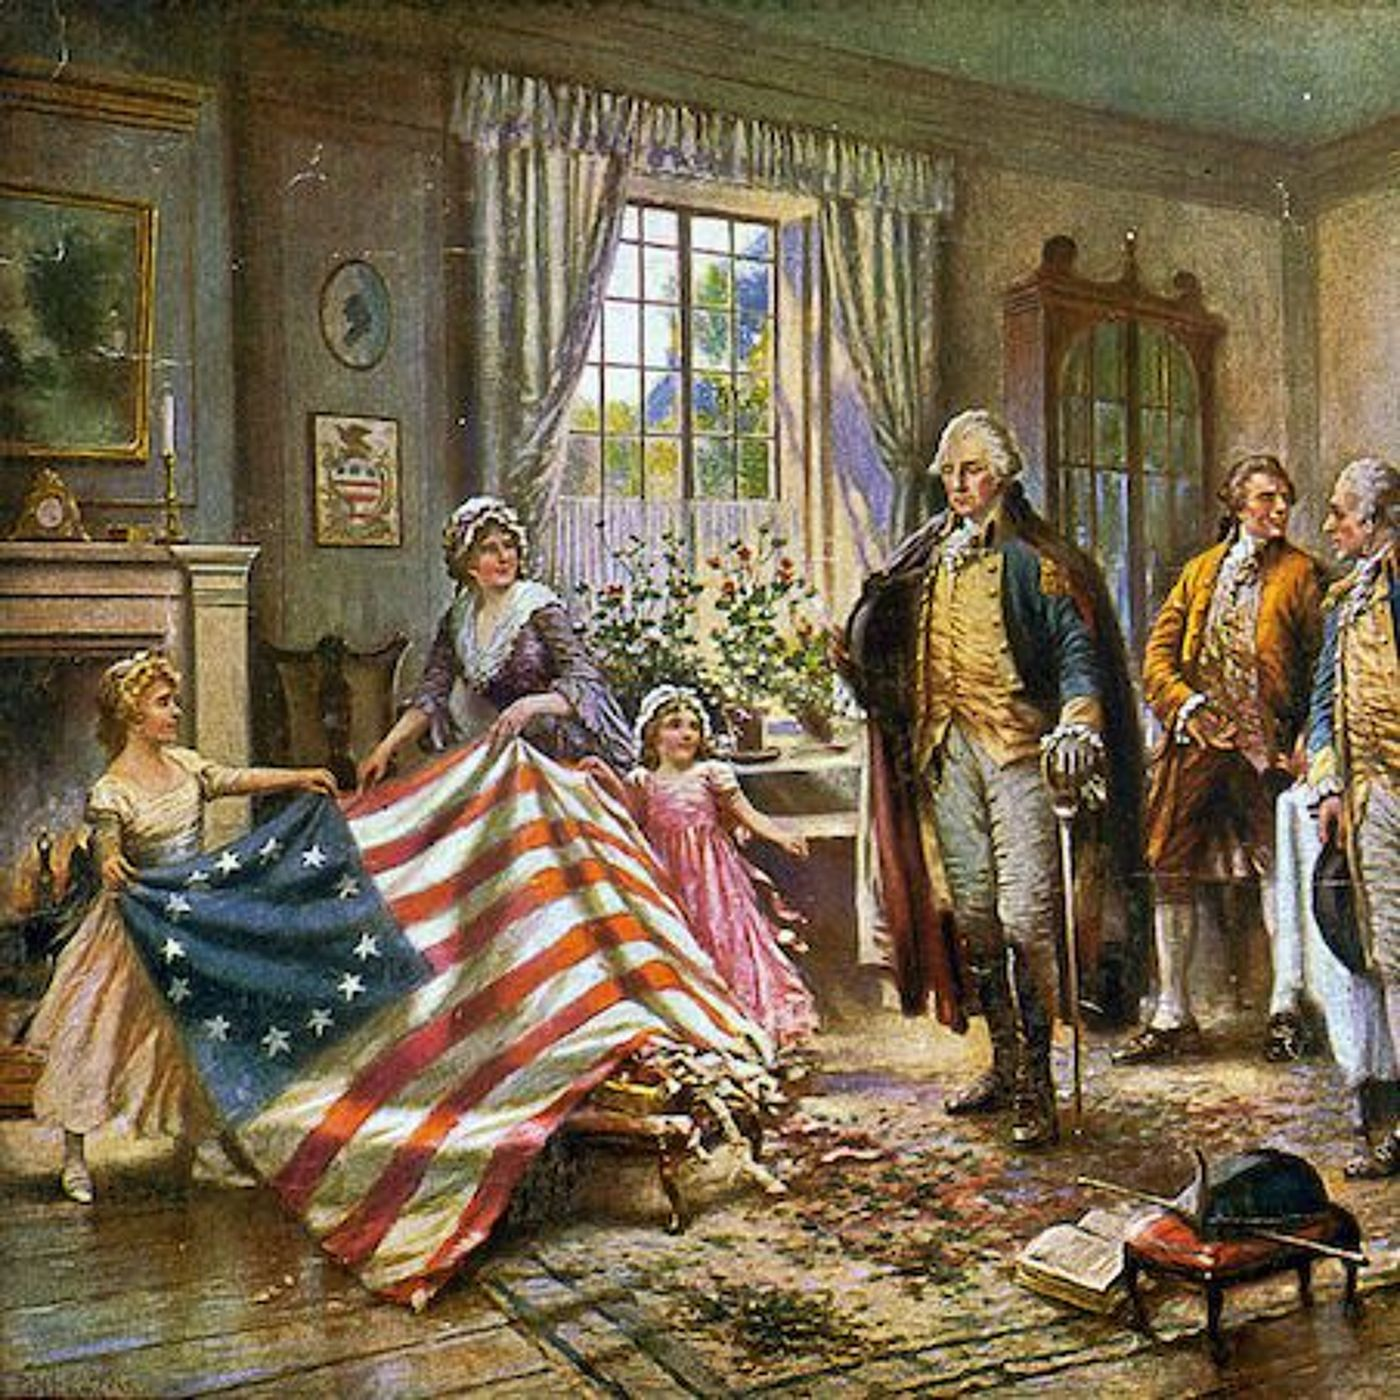 34: The First American Flag